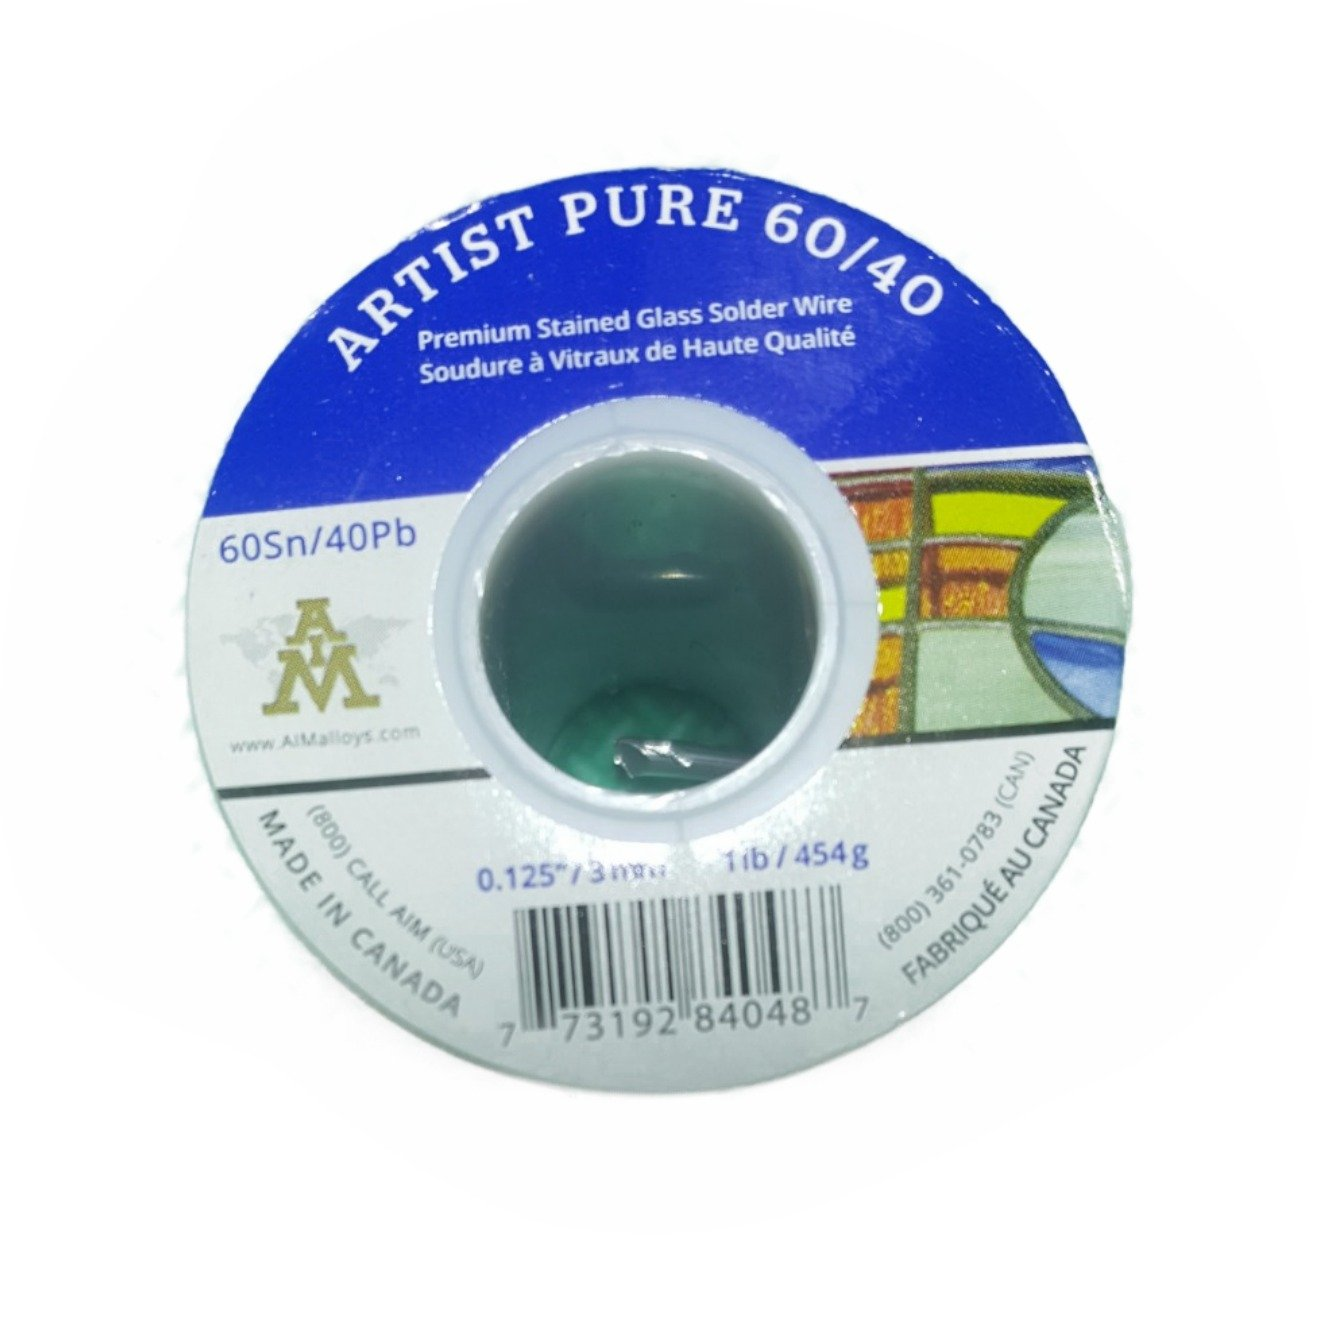 Artist Pure 60/40 Premium Stained Glass Solid Core Solder Wire, 1/8'' Diameter, 1 Pound Spool by Artist Pure (Image #1)